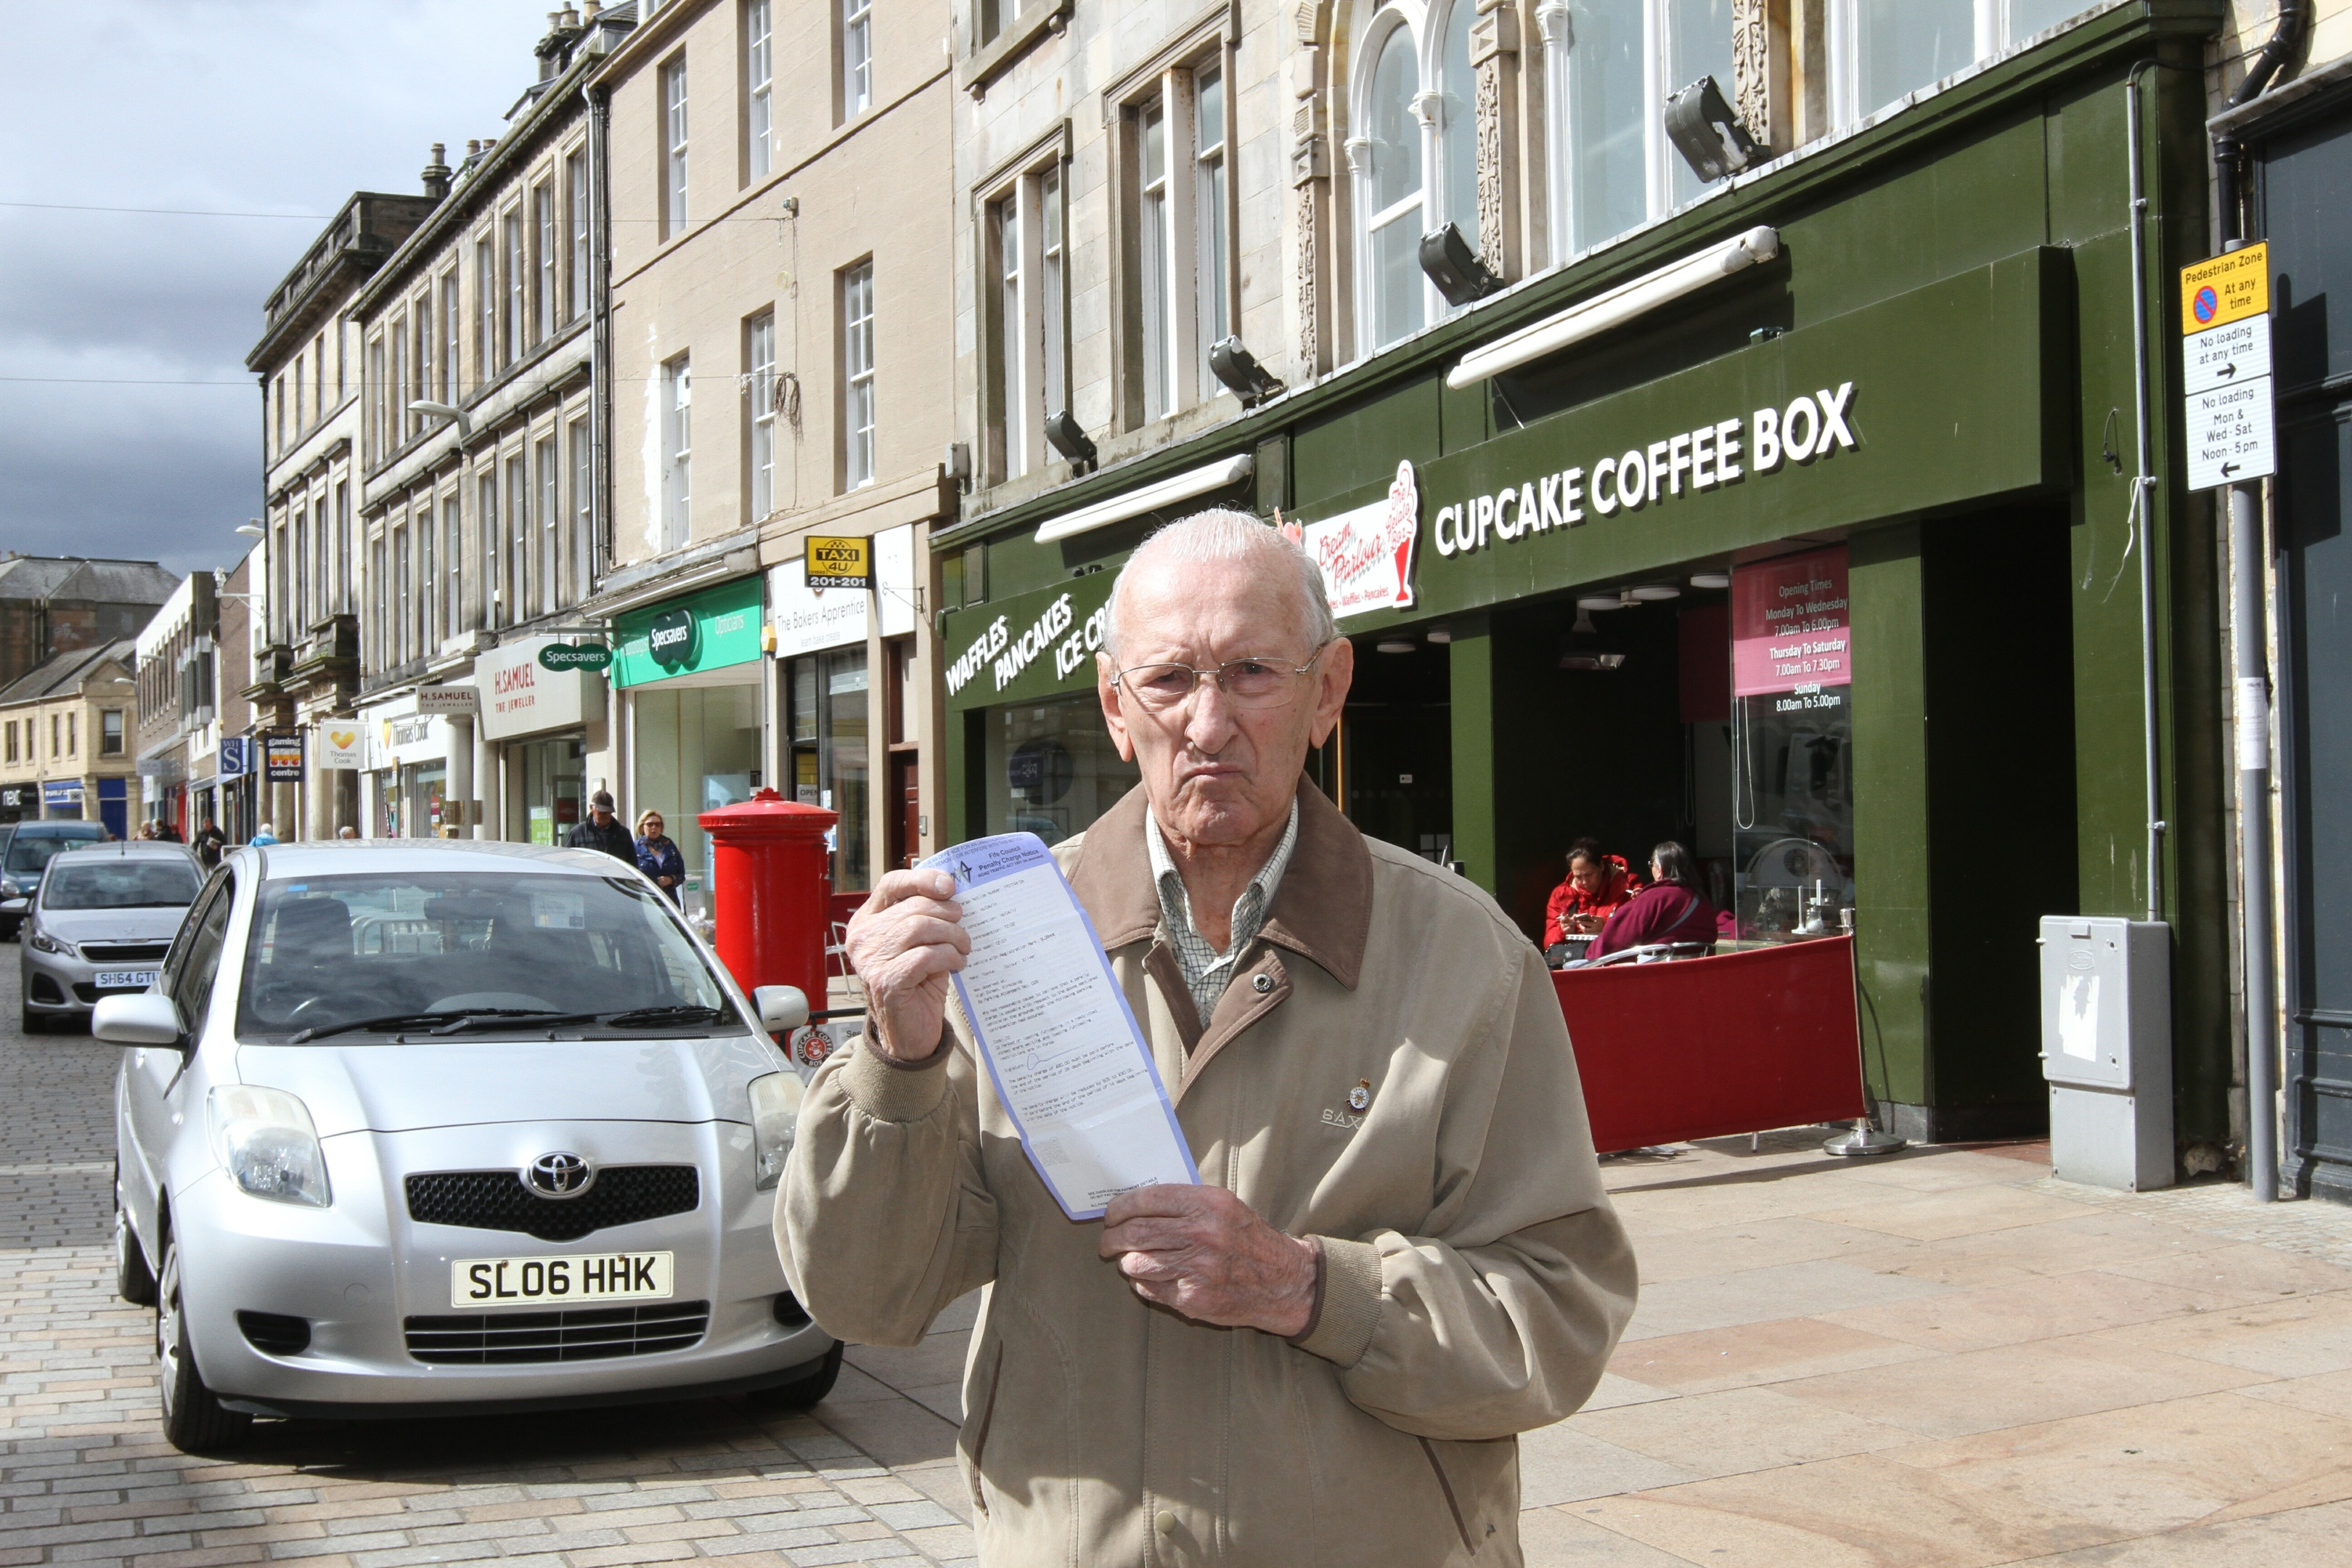 Tom Barnes, 91, in Kirkcaldy High Street, where he received his parking ticket.